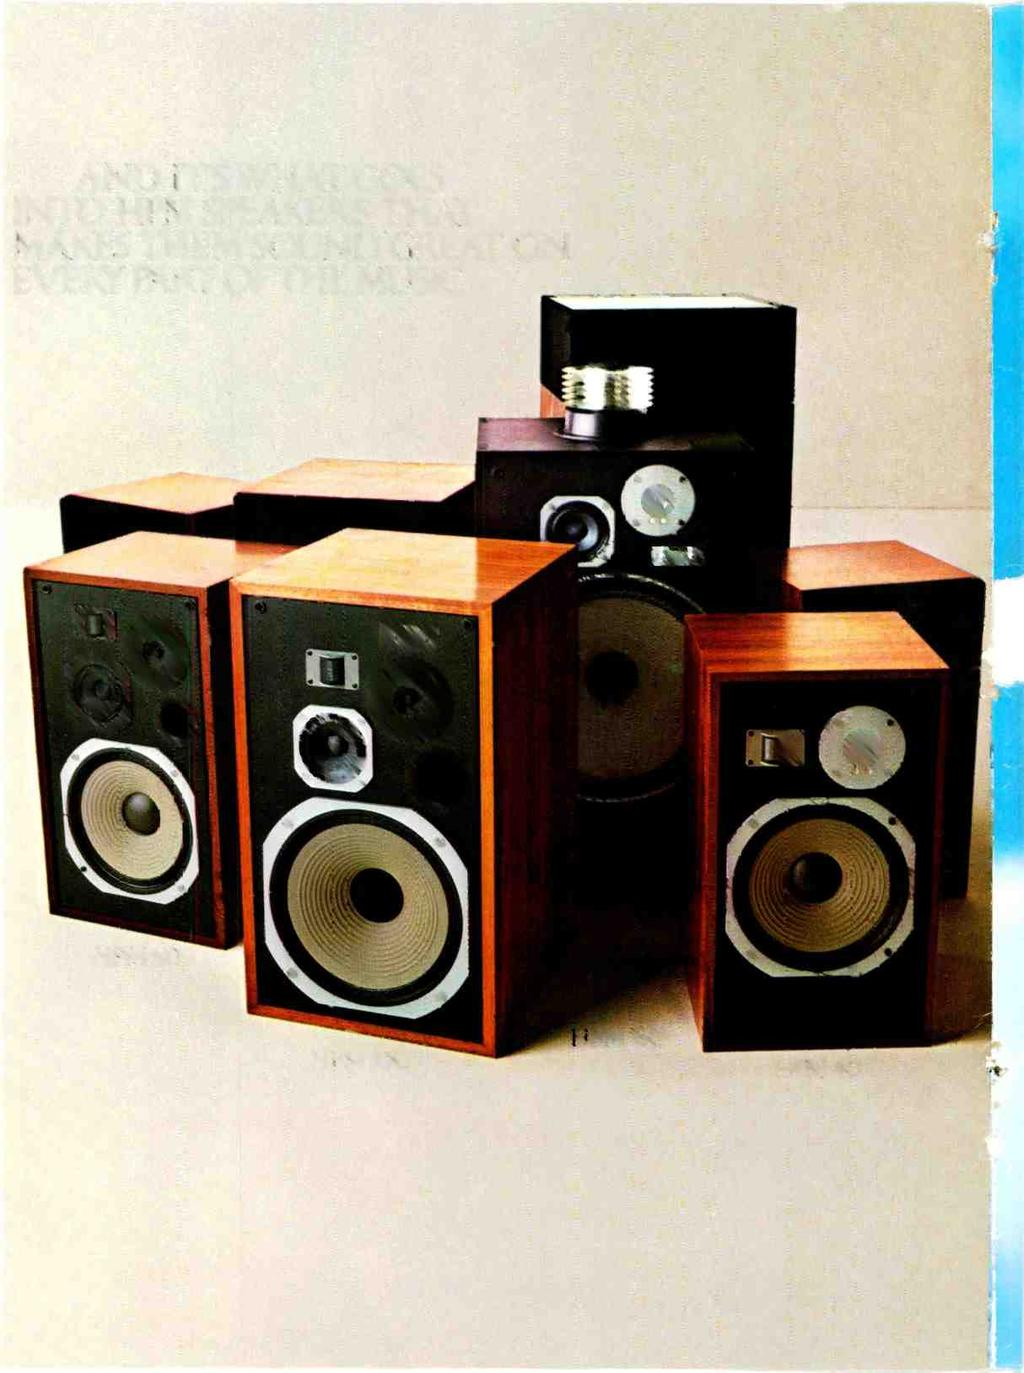 Amp Leachs Circuit Double Barreled Crossfeed Build A Headphone Power Kit Subwofer Dms 330 Super Bass And Its What